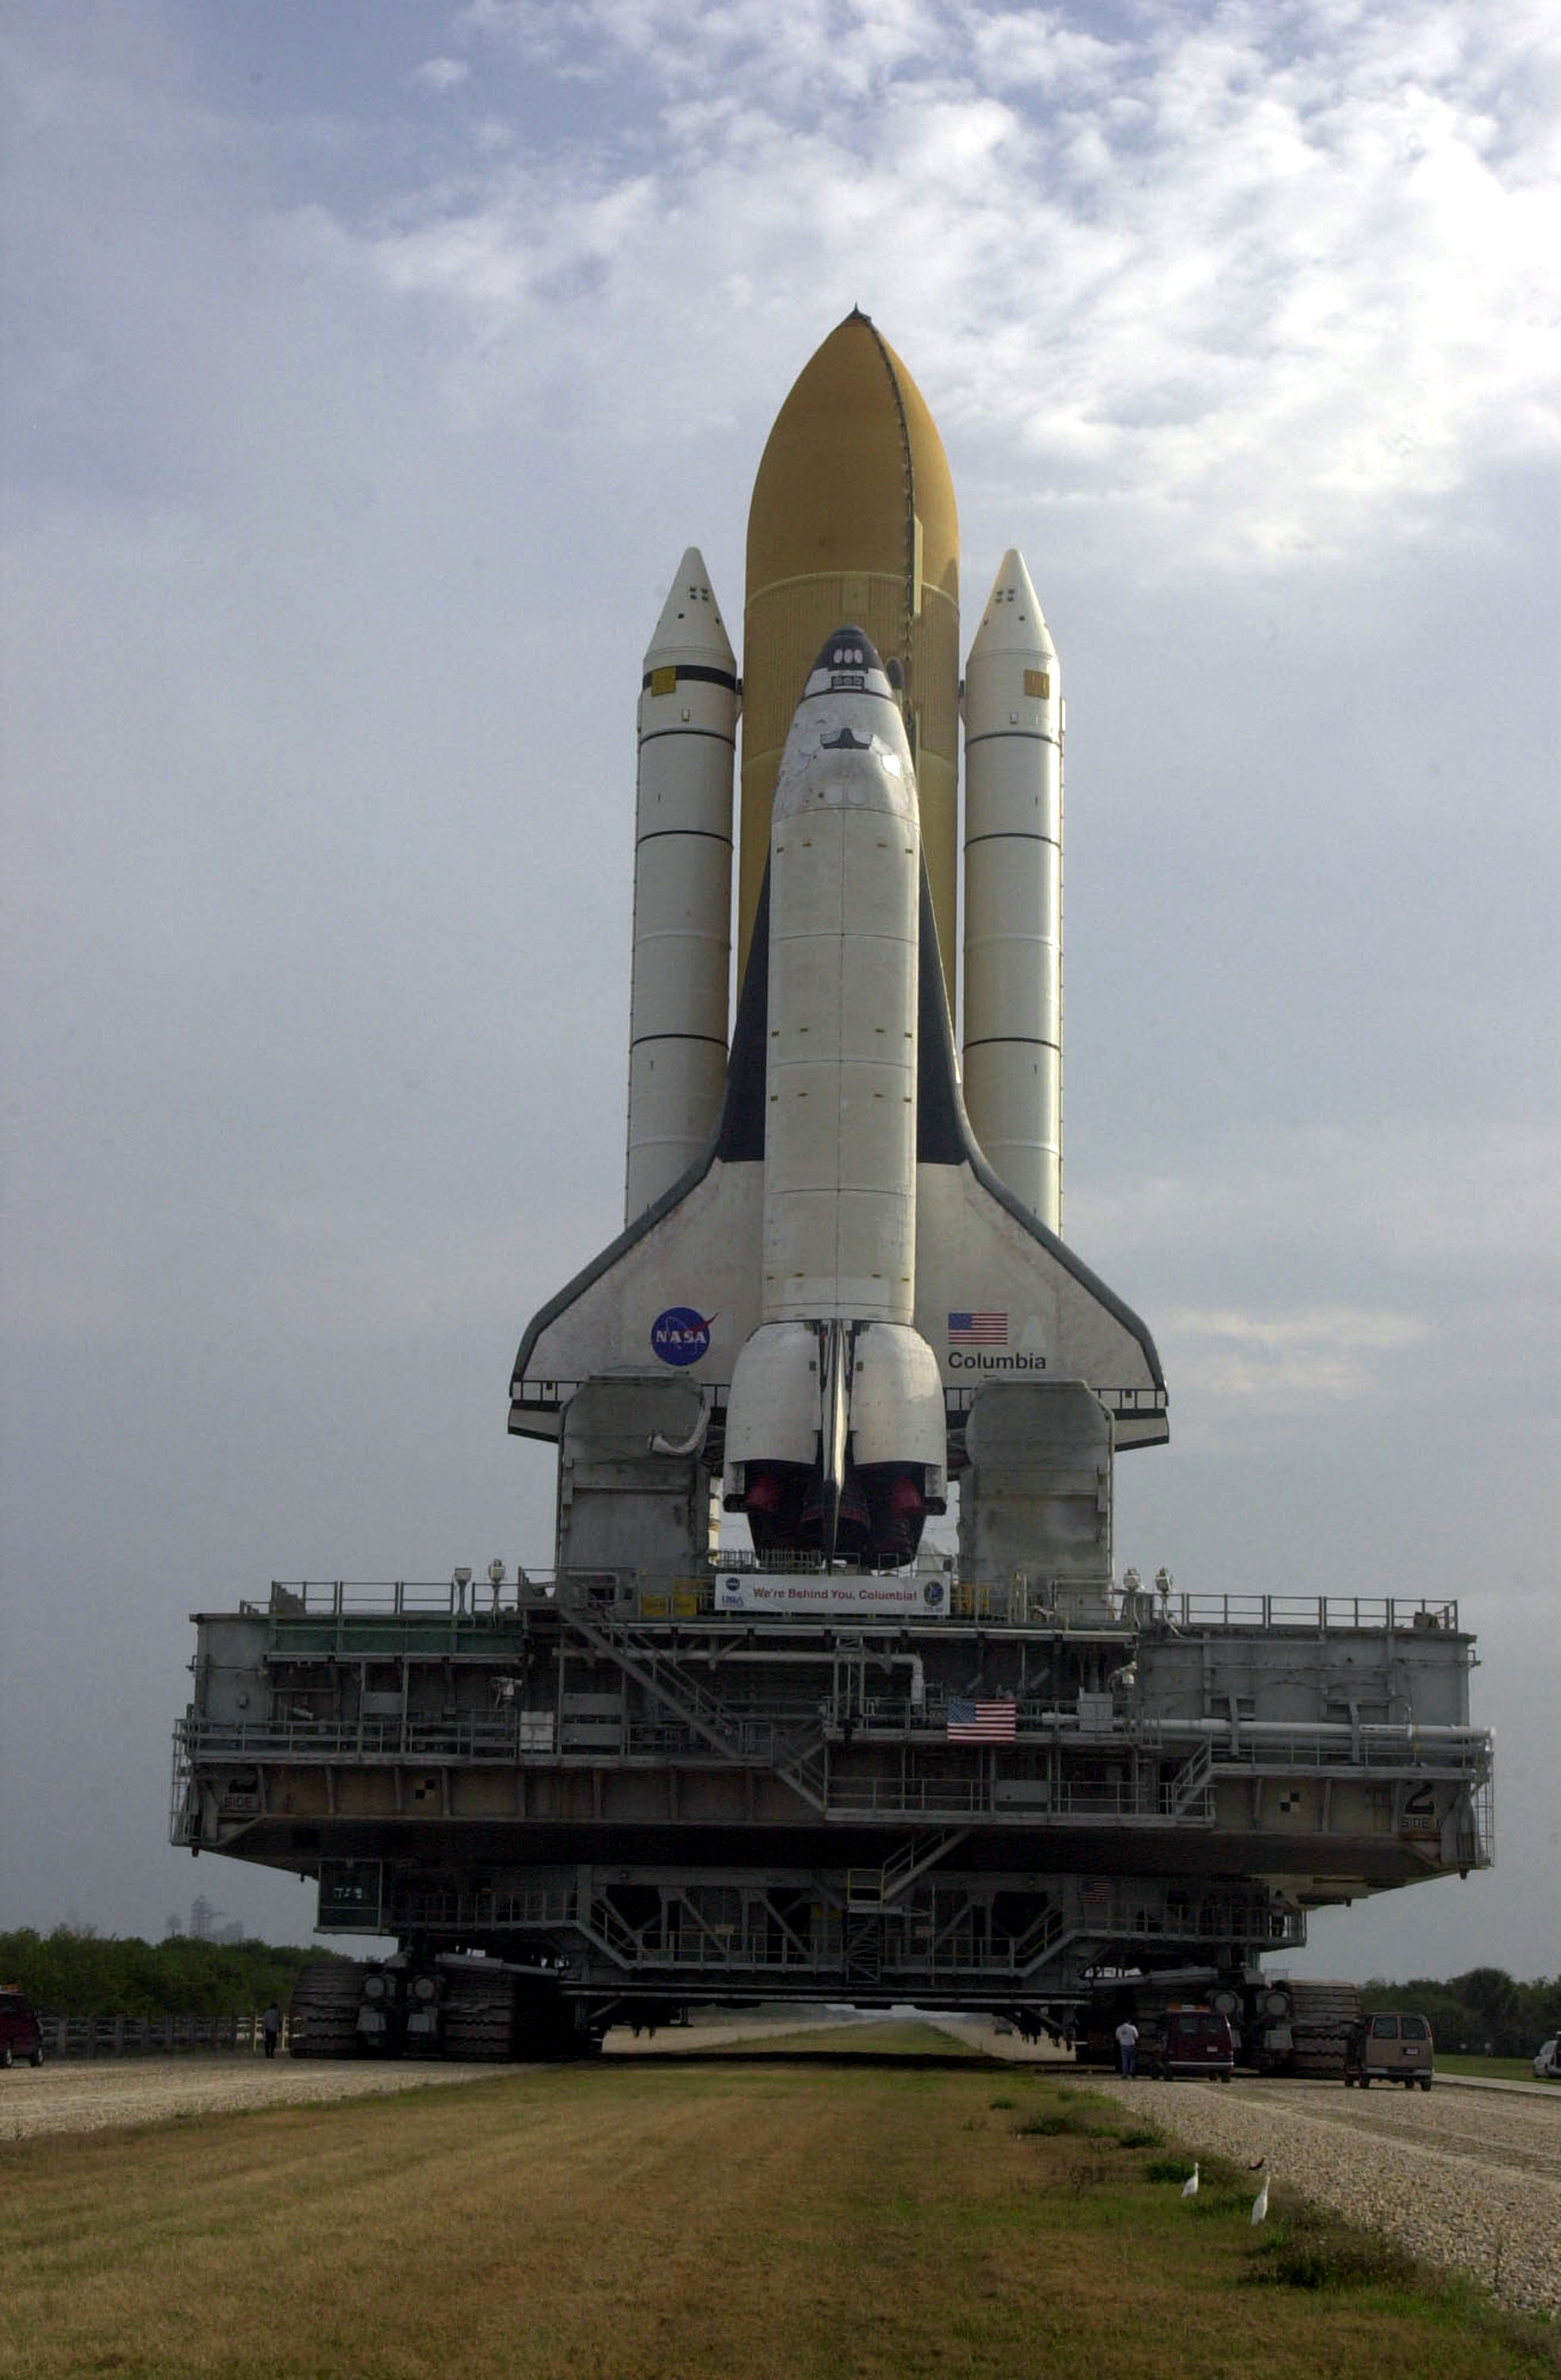 nasa space shuttle replacement vehicle - photo #41